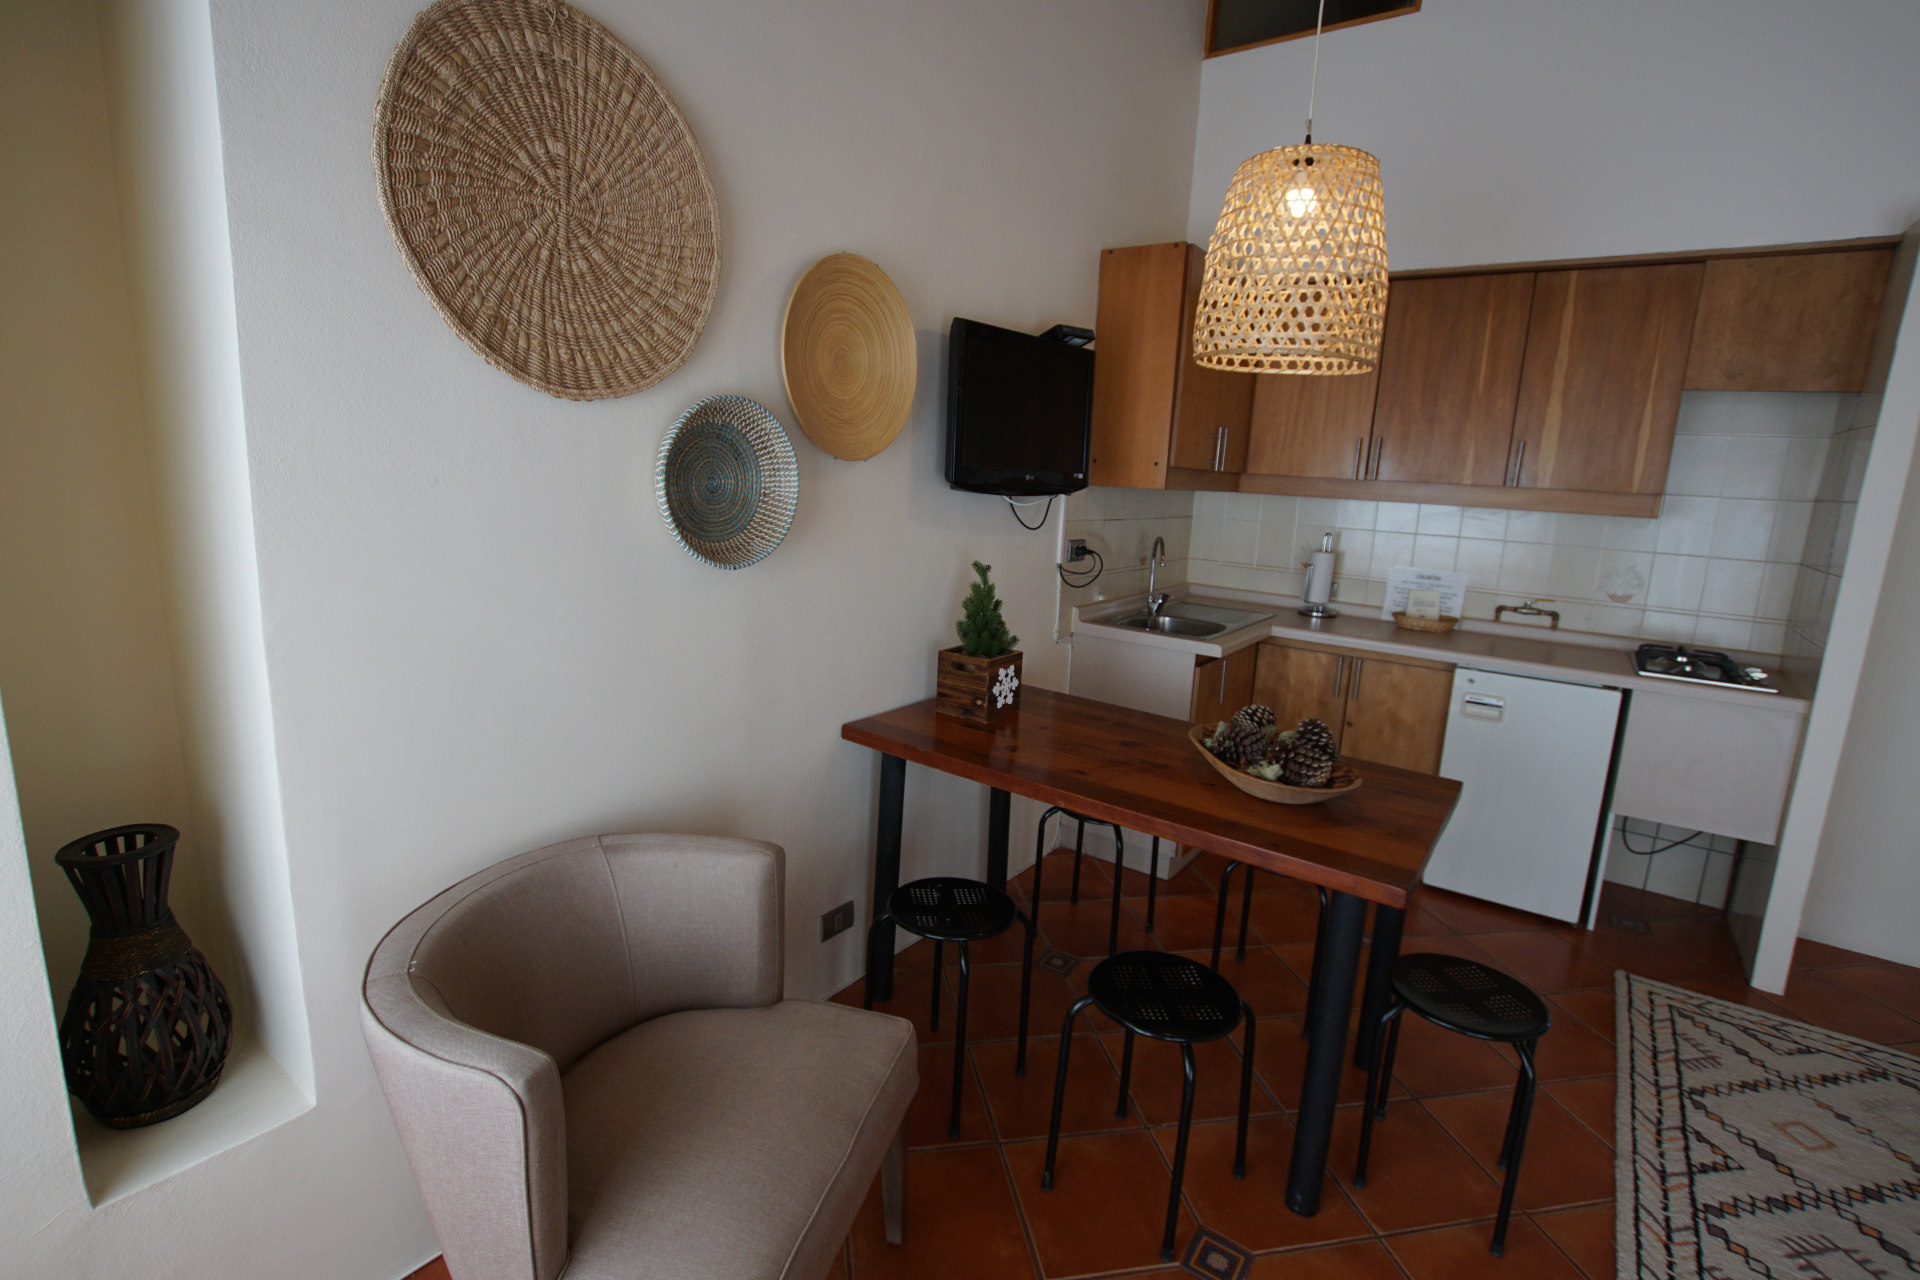 Kitchenette - Departamento Tipo B 223